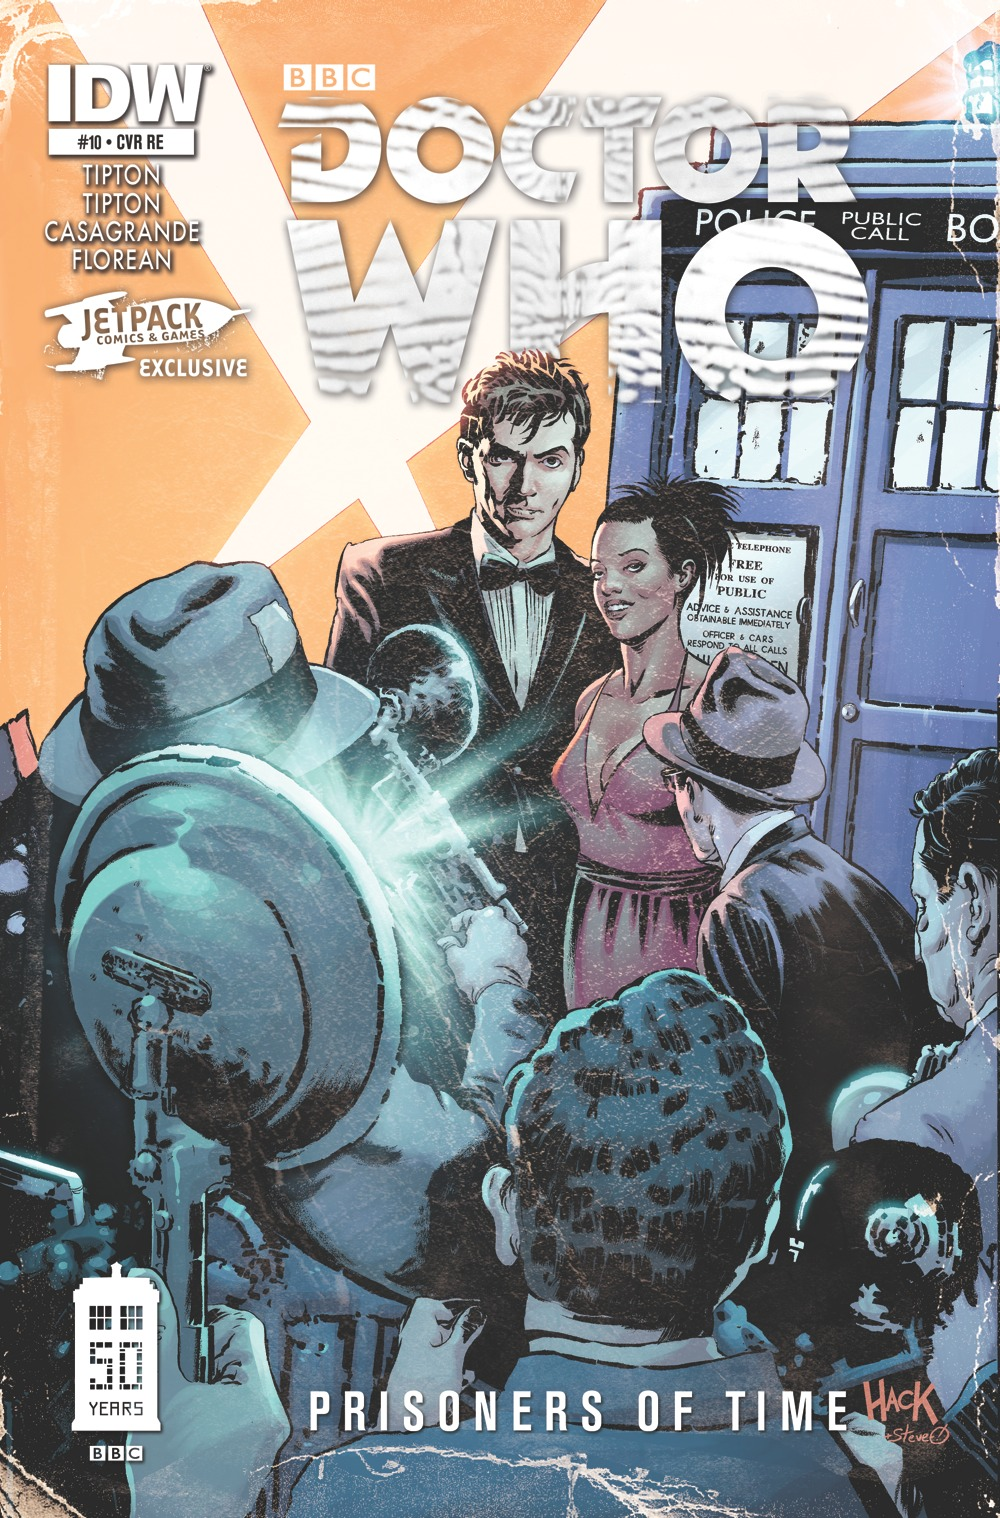 Doctor Who Prisoners of Time #10 Jetpack Comics by RobertHack